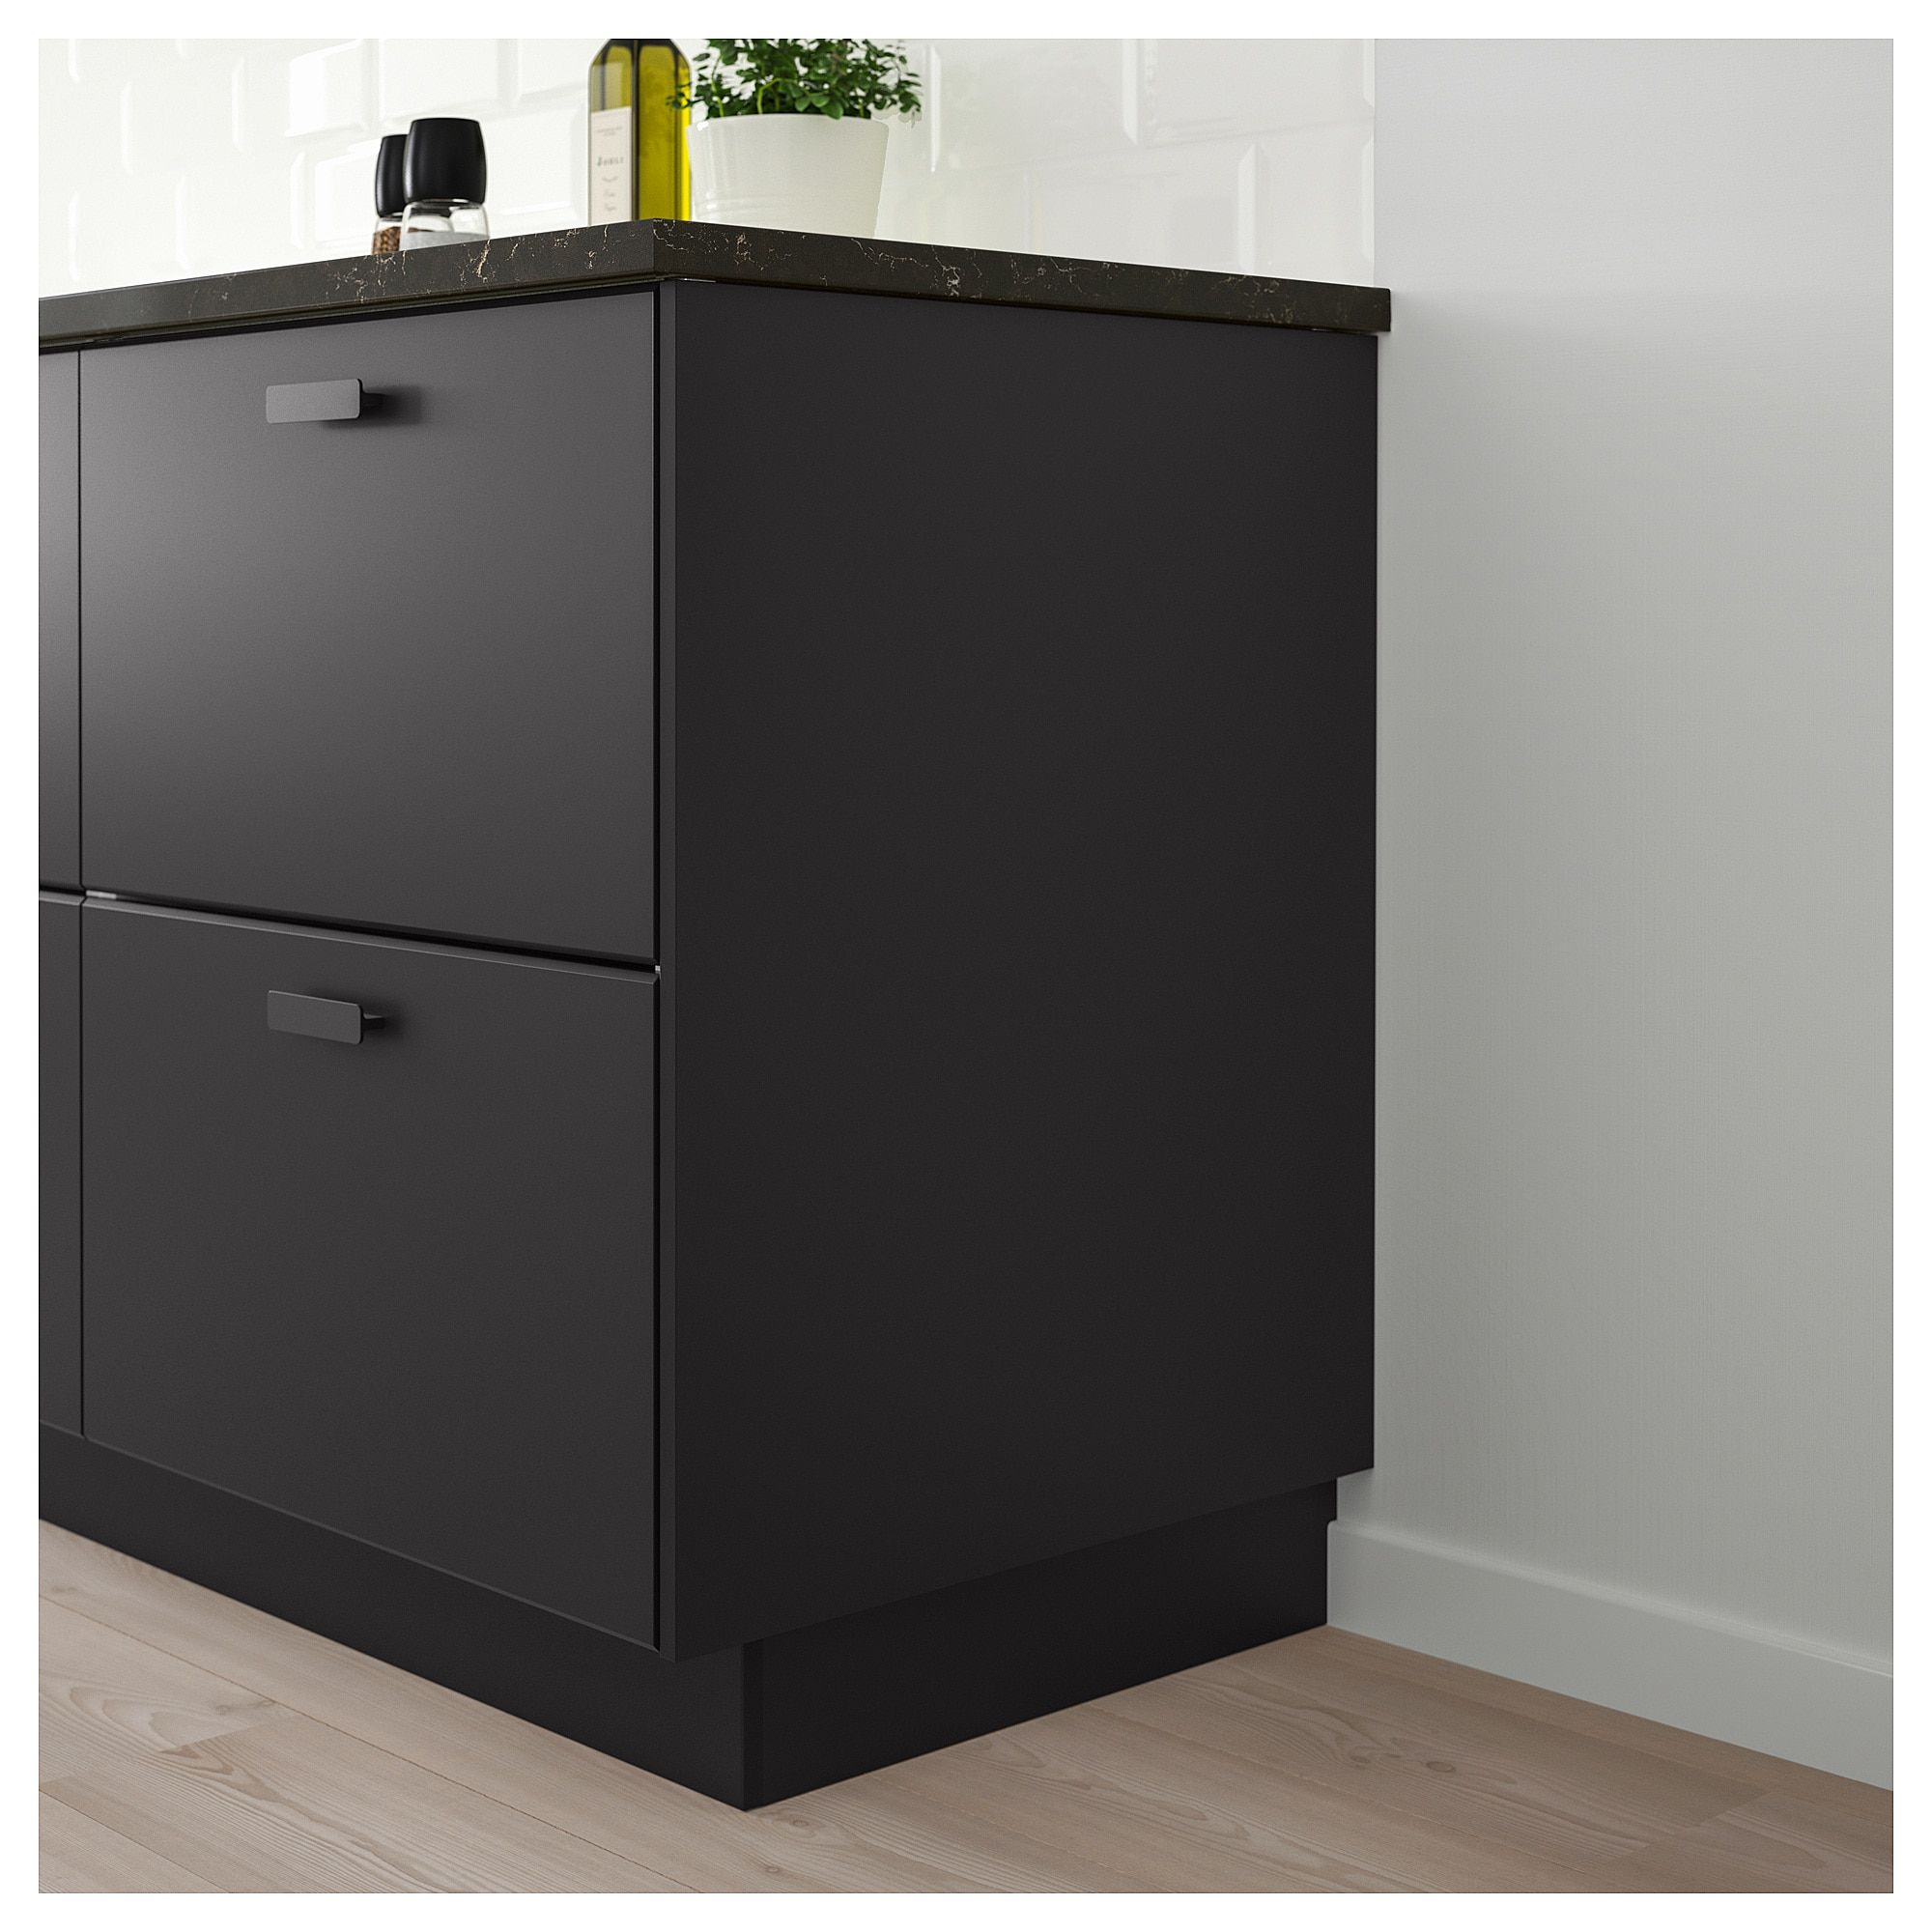 Kungsbacka Cover Panel Anthracite Ikea Kungsbacka Ikea Kitchen Cabinets Cover